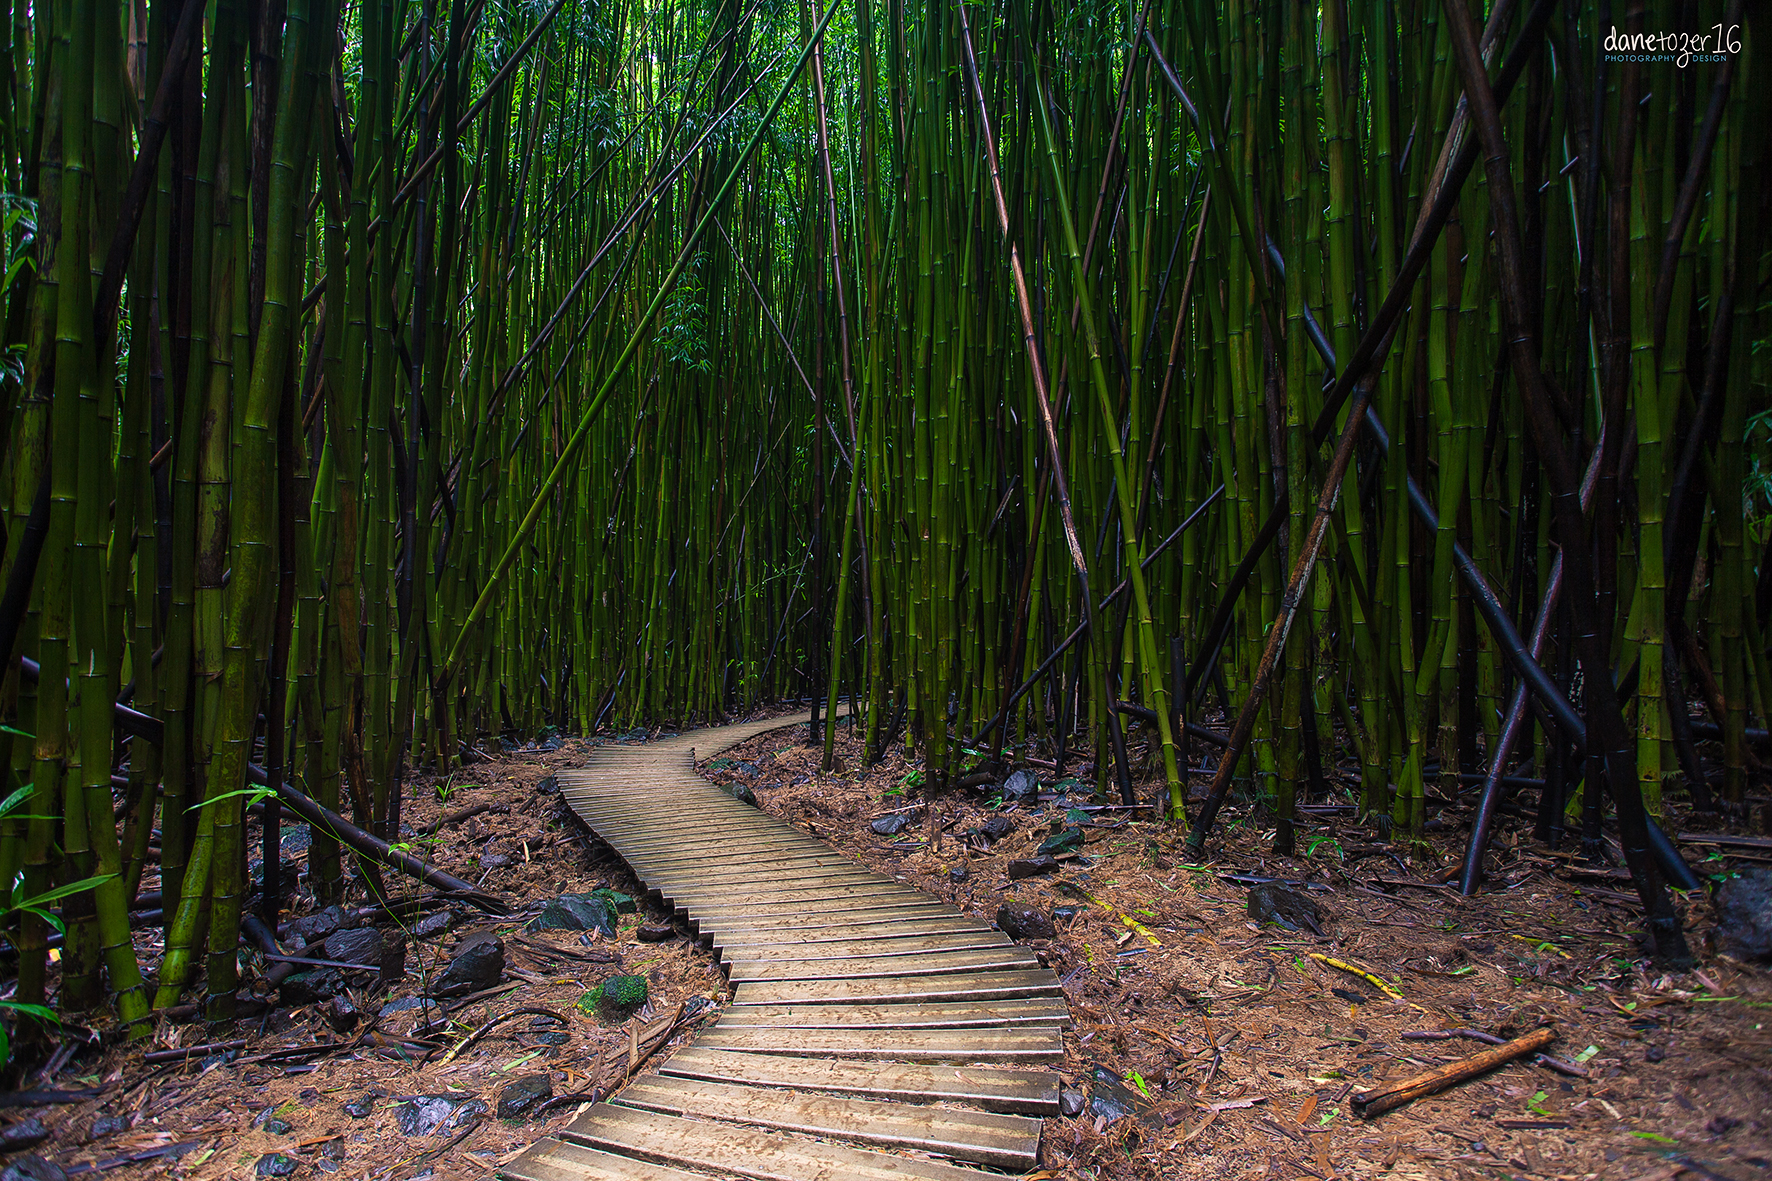 Bamboo Forest, Maui